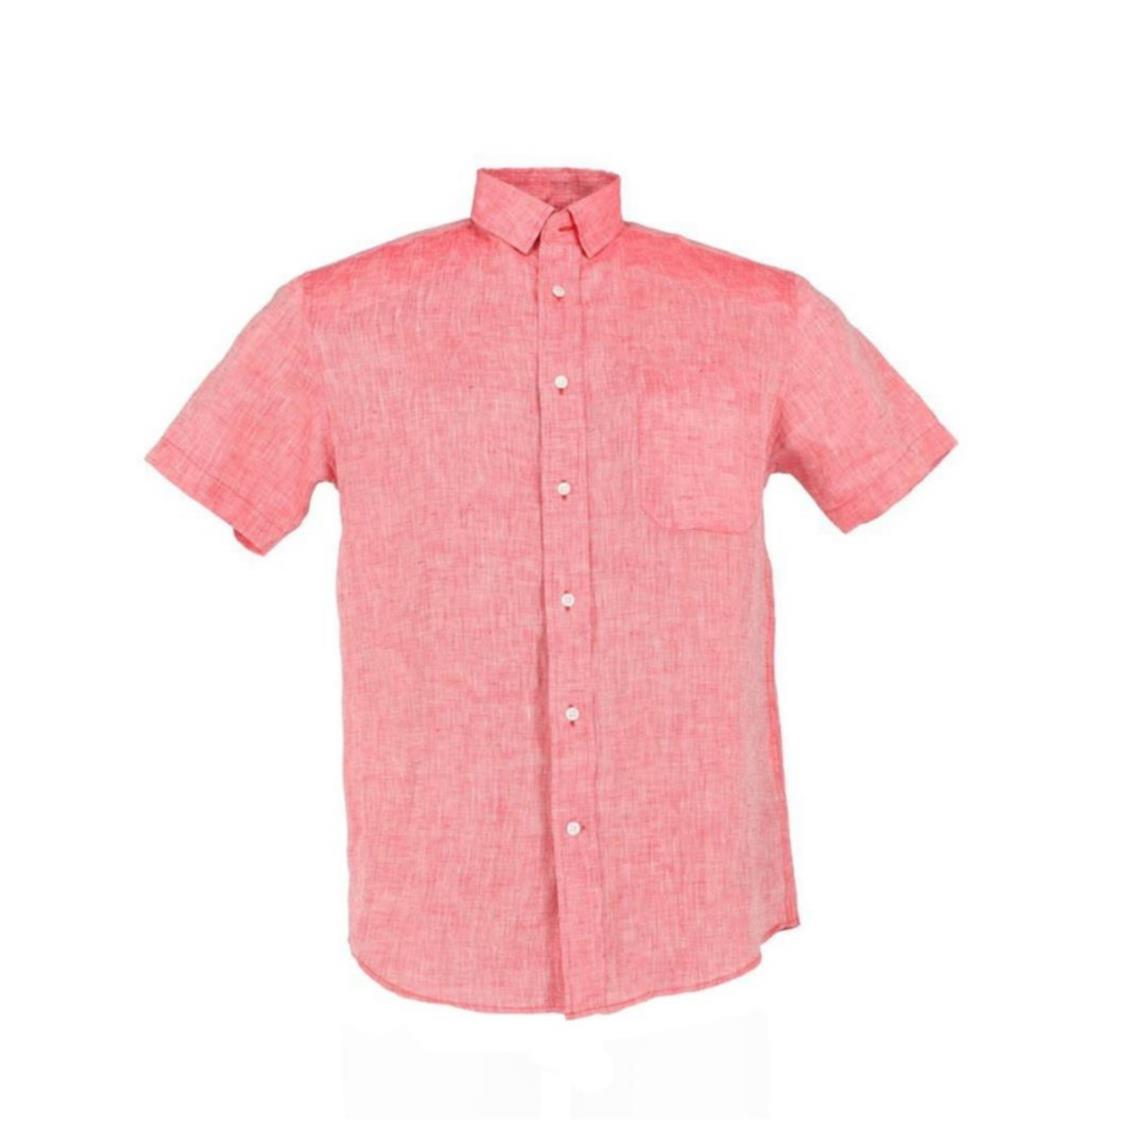 Mens Short Sleeve Linen Slim Shirt in Red